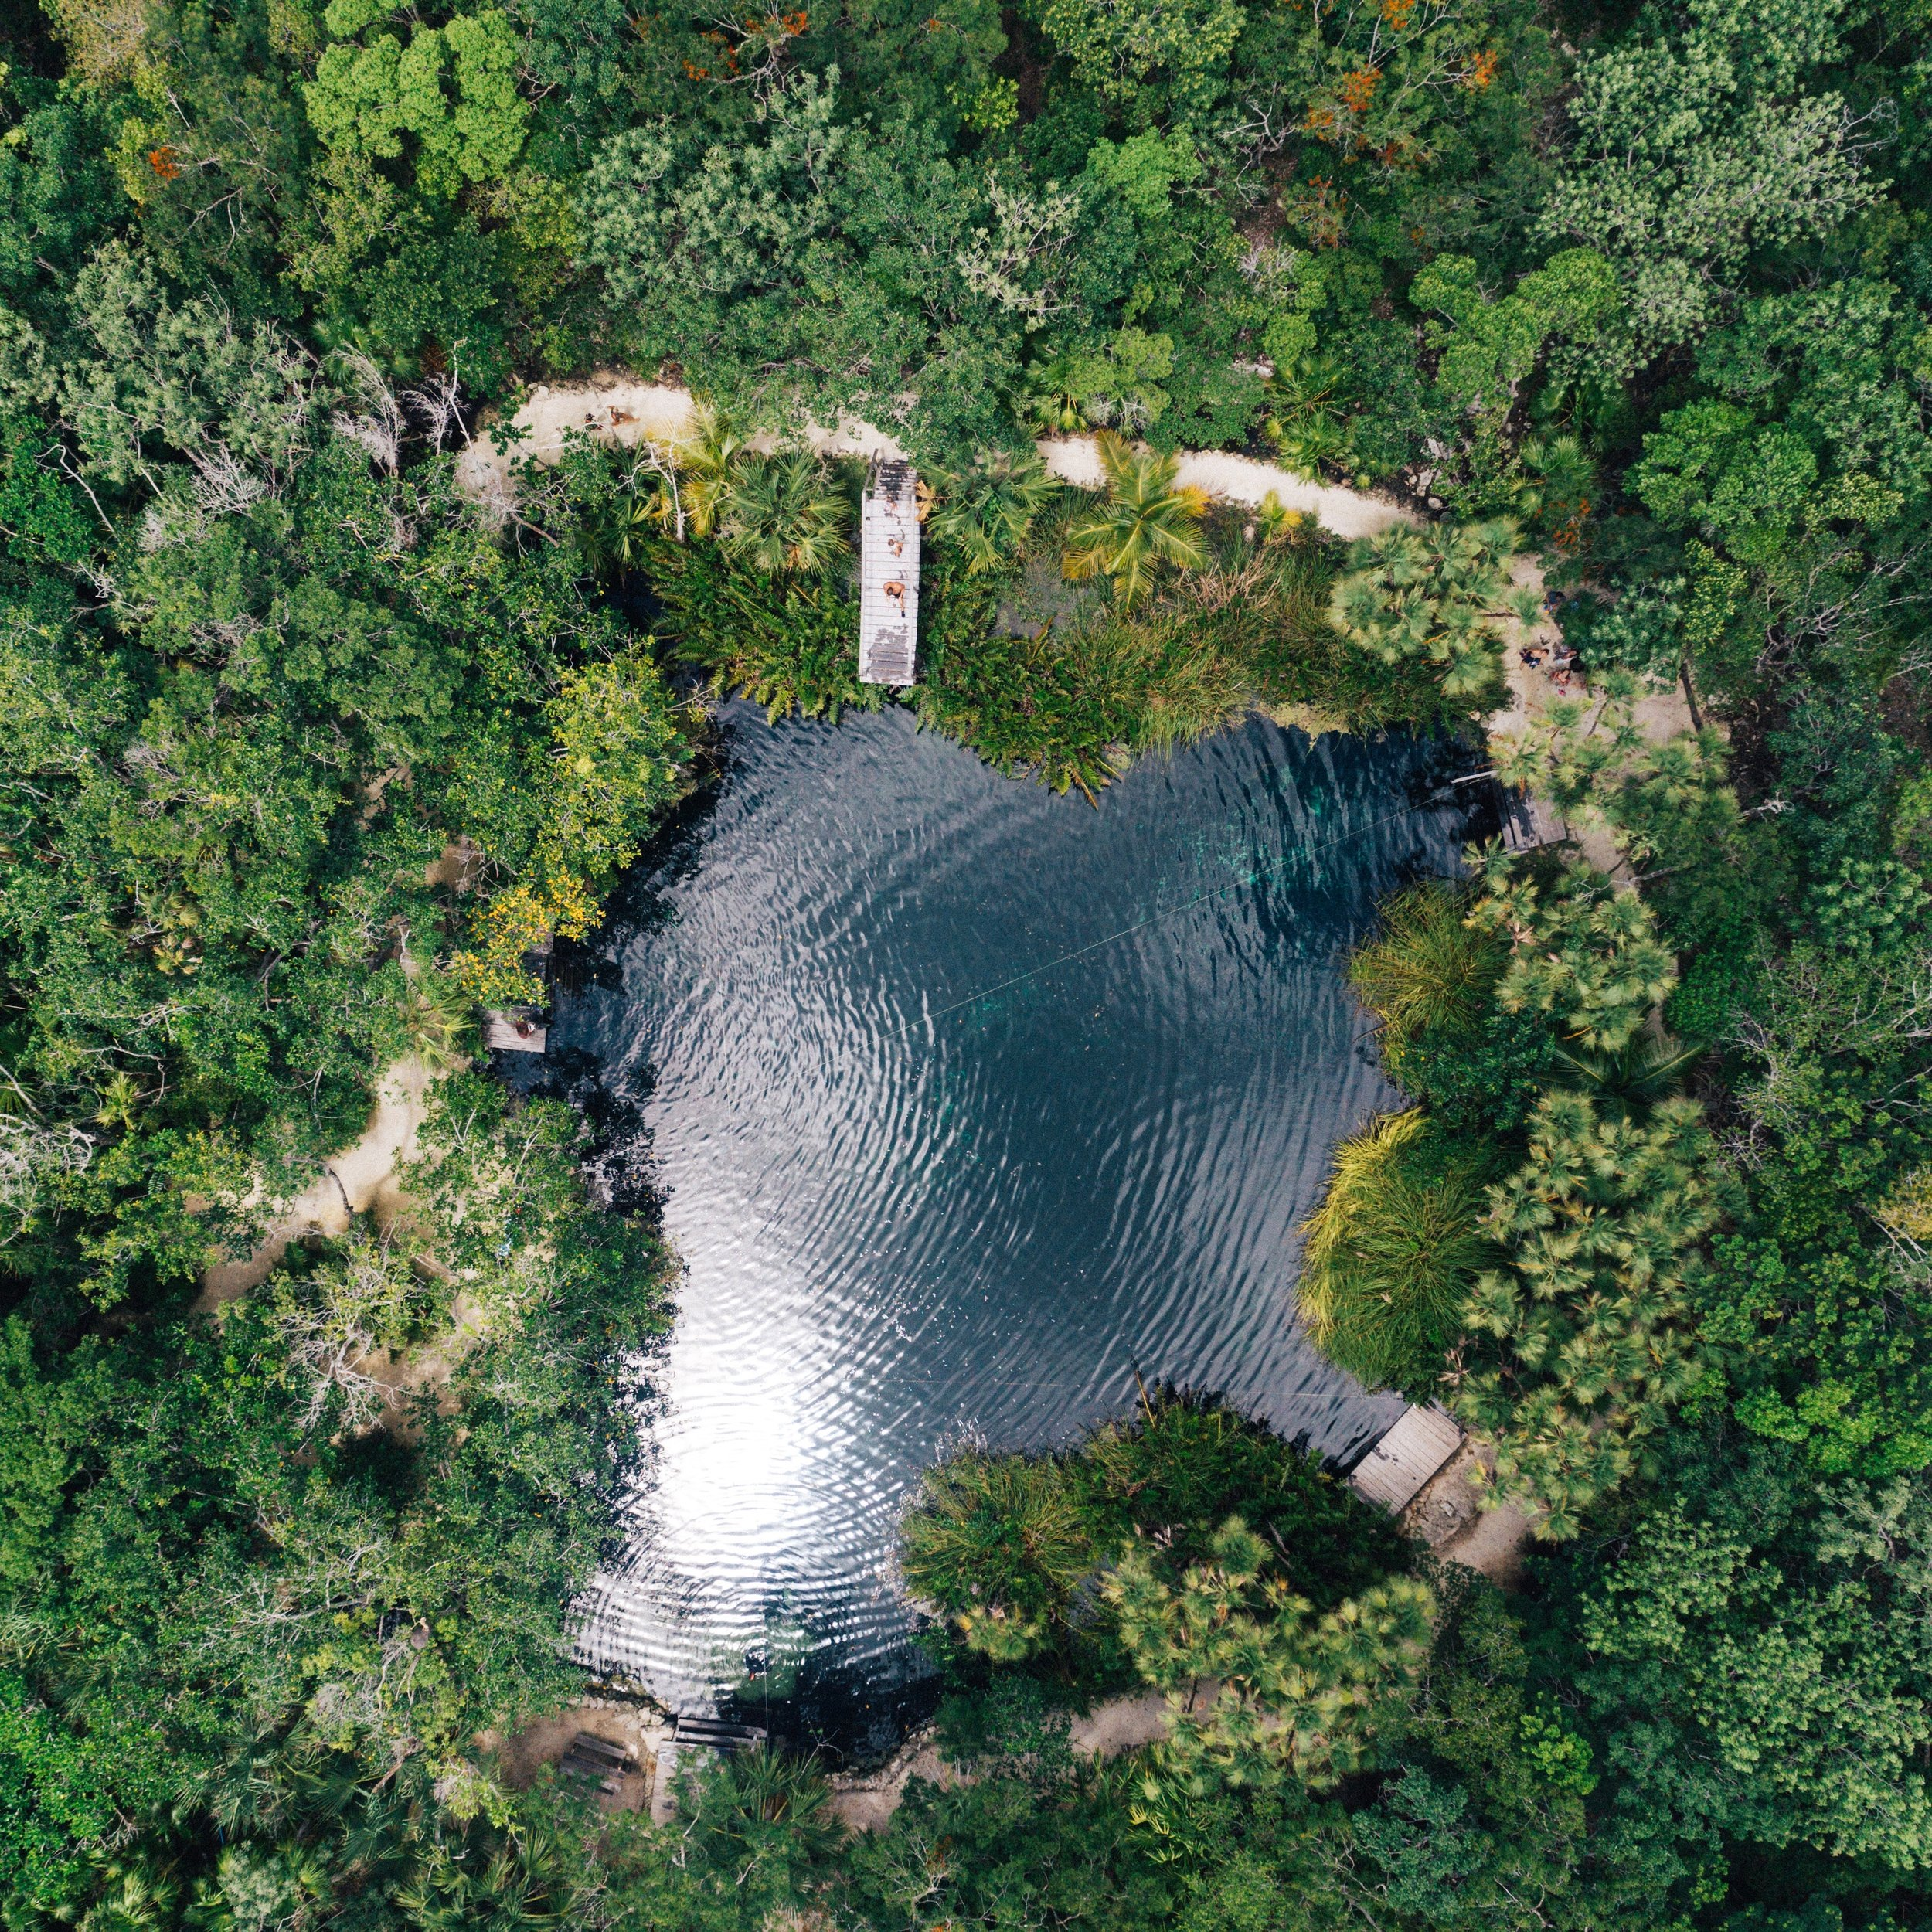 """One of the best parts of """"world-schooling"""" is finding something we all have never heard about before, and enjoying it so much. The cenotes of the Yucatan state of Mexico, are a perfect example of this. A cenote is a natural pit or sinkhole resulting from the collapse of limestone bedrock that exposes fresh groundwater underneath. There are over 6,000 cenotes in this part of Mexico, which now can be visited and are open for swimming, scuba diving, and snorkeling since they have such clear water and amazing unique formations underneath the surface. This one had a nice jumping platform (top middle) which we all enjoyed jumping in from on this humid day. A true hidden gem in the middle of the mayan jungle!!!!"""